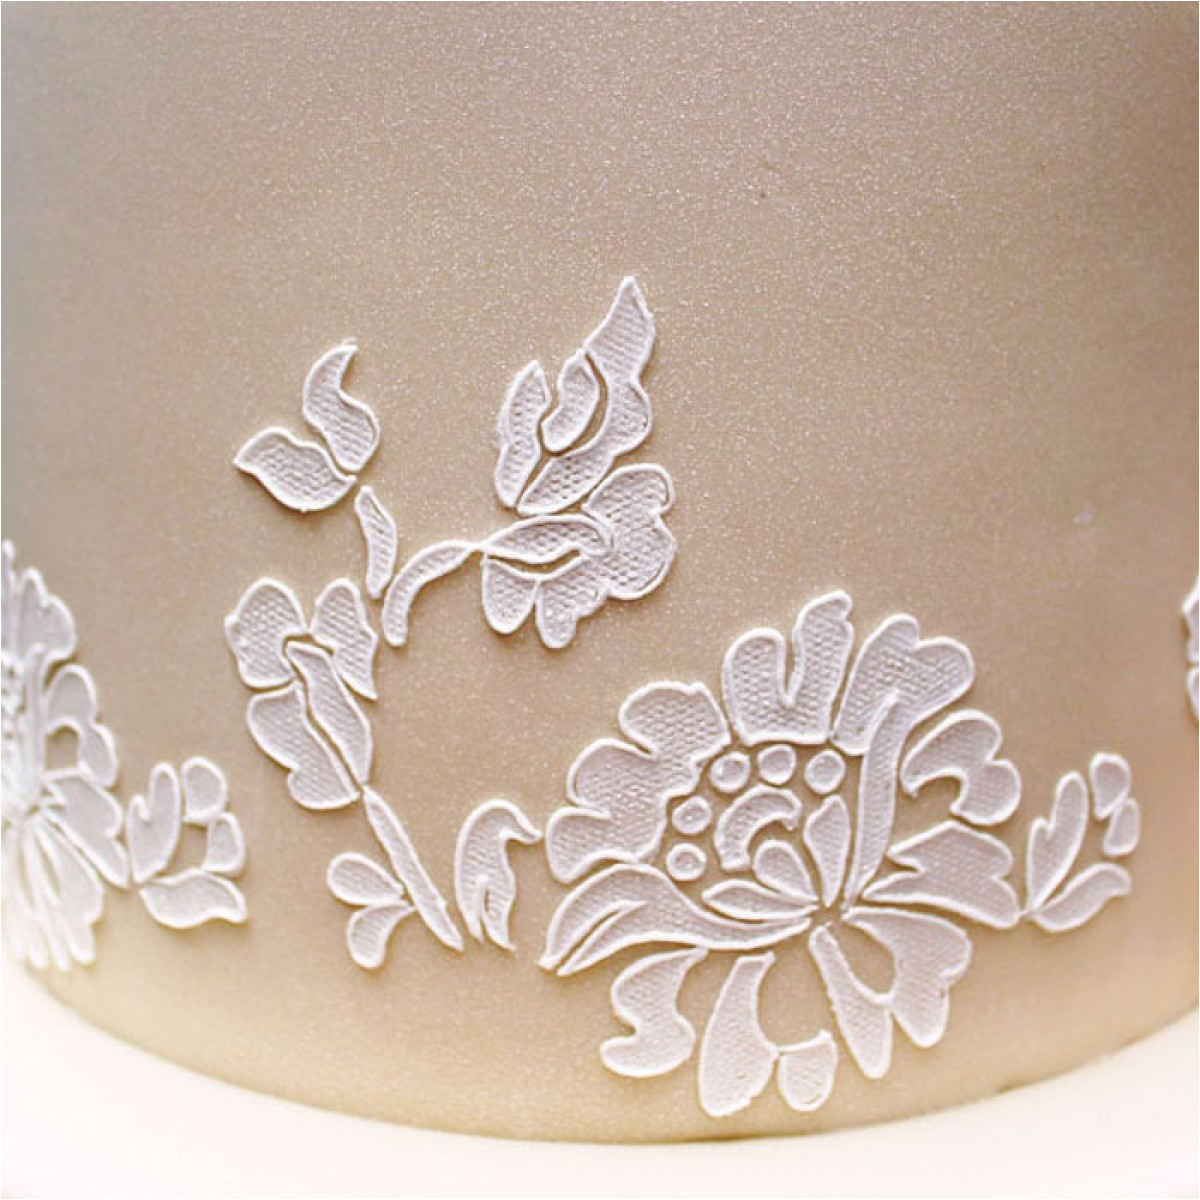 Lace Templates for Cakes Floral Lace Stencil